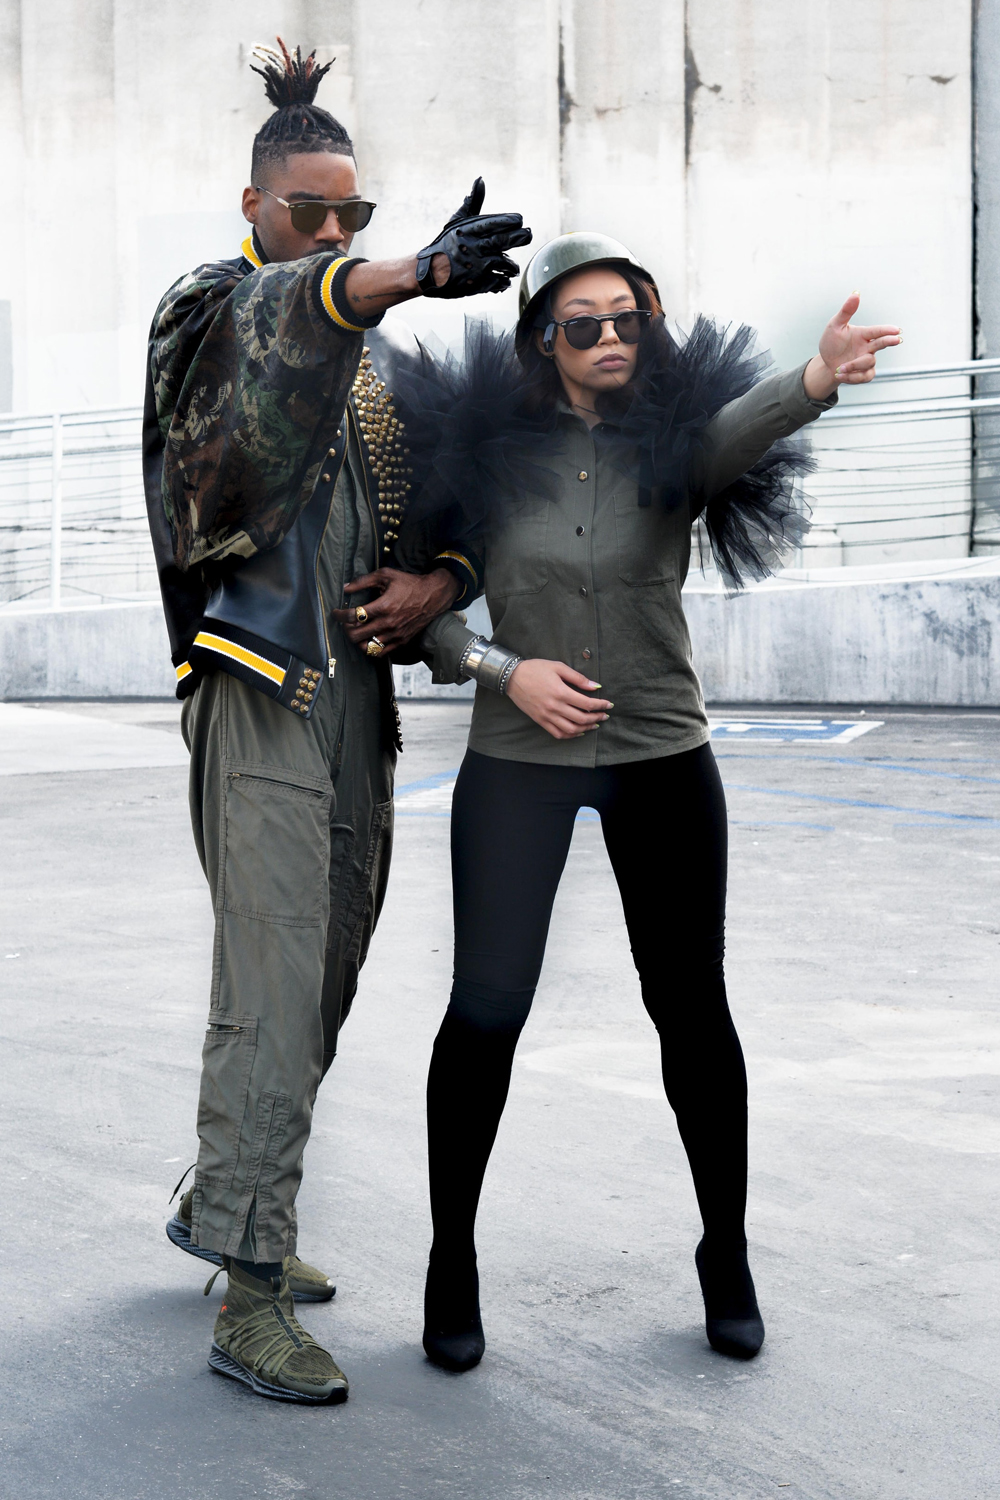 men and woman wearing military outfits and posing to the camera